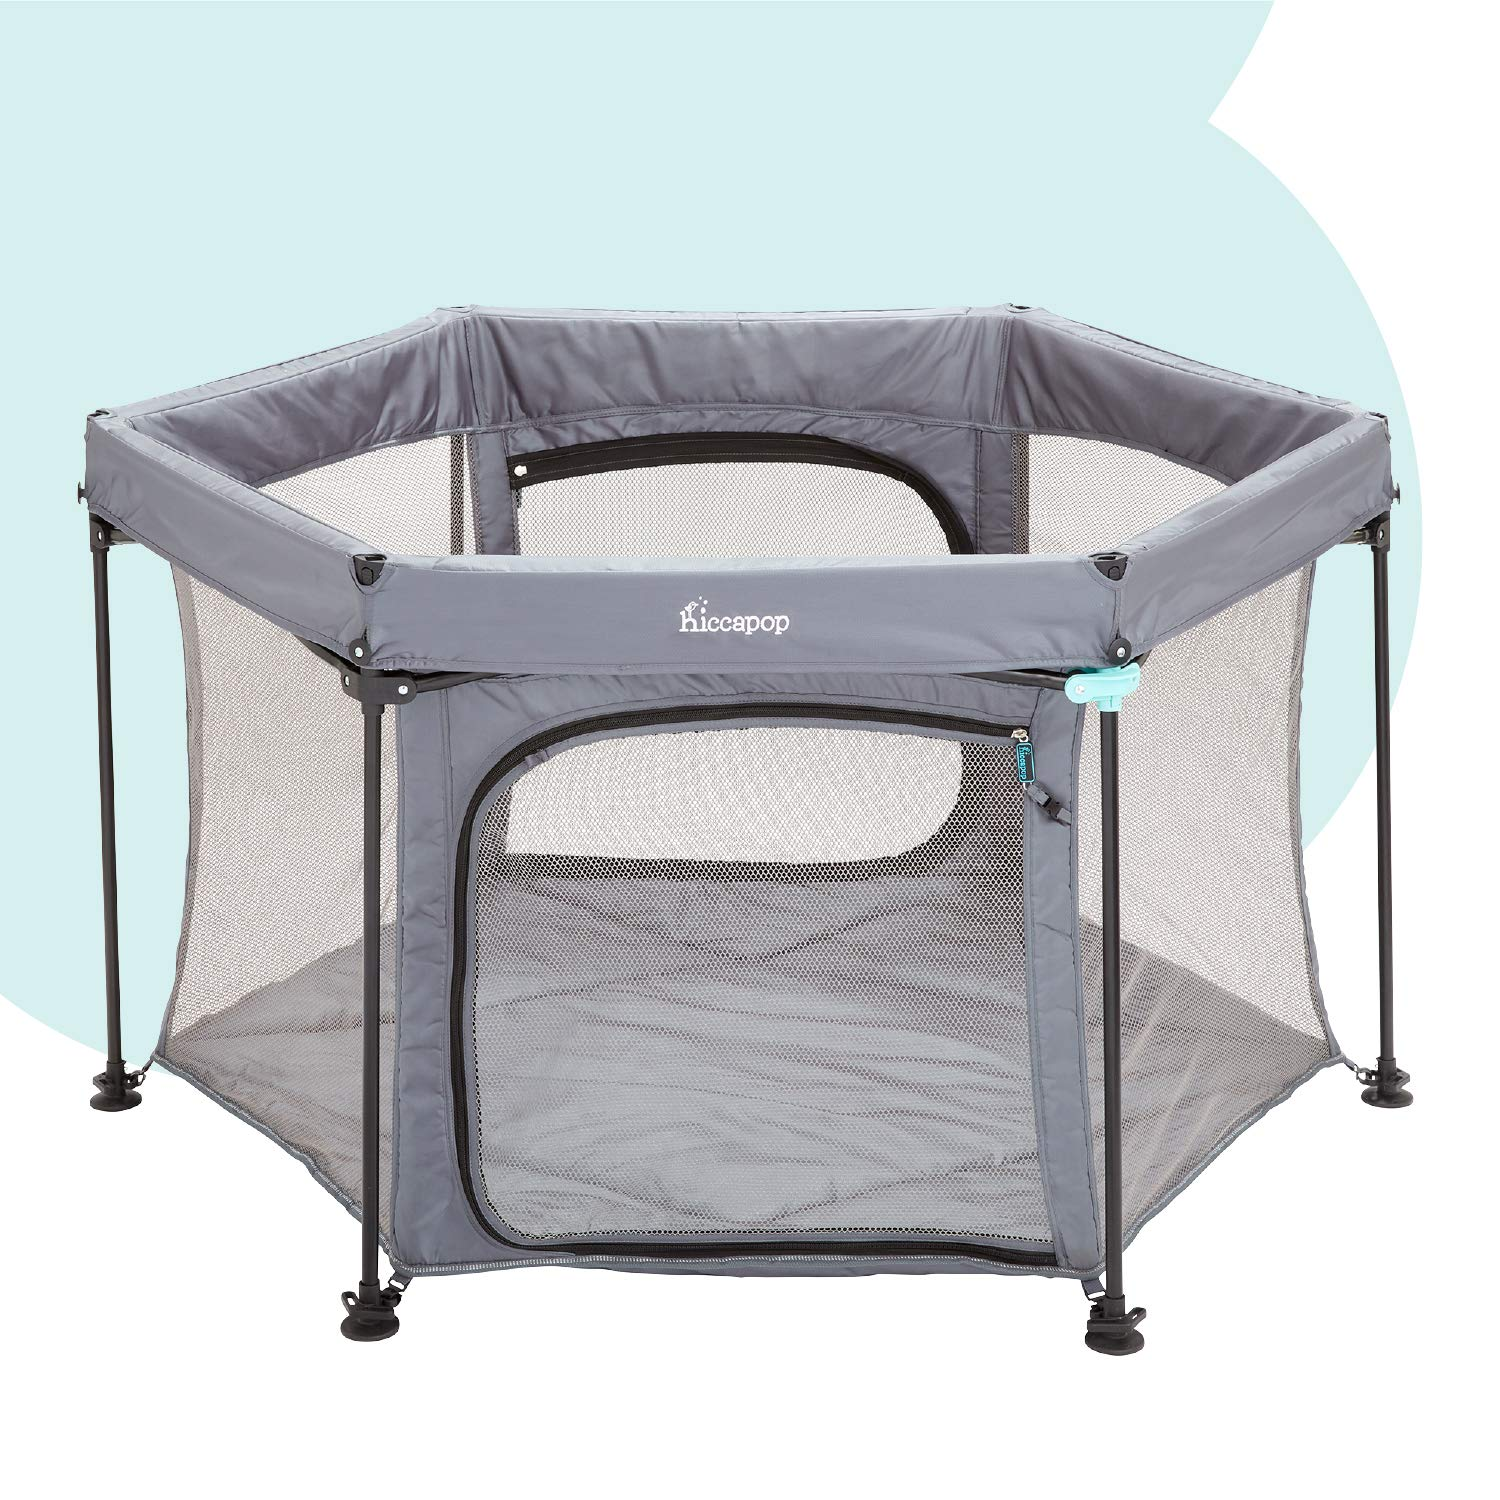 hiccapop PlayPod Deluxe Portable Playpen for Babies and Toddlers, Portable Play Yard for Baby with Padded Floor | Pop Up Playpen at Beach and Home | Outdoor Playpen for Baby | Portable Playard